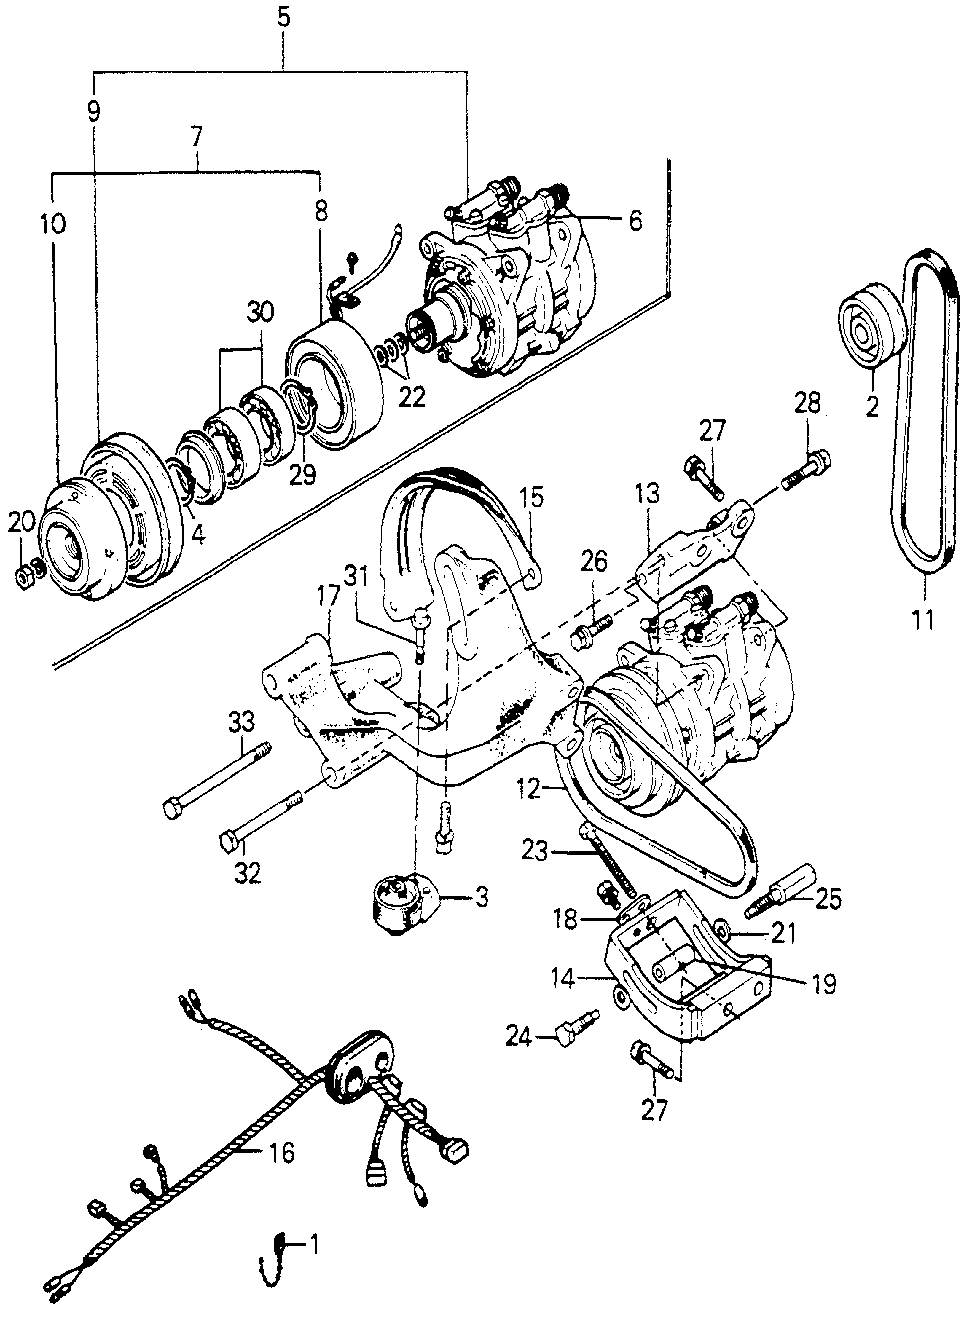 N949013-2600 - WASHER A, PLATE